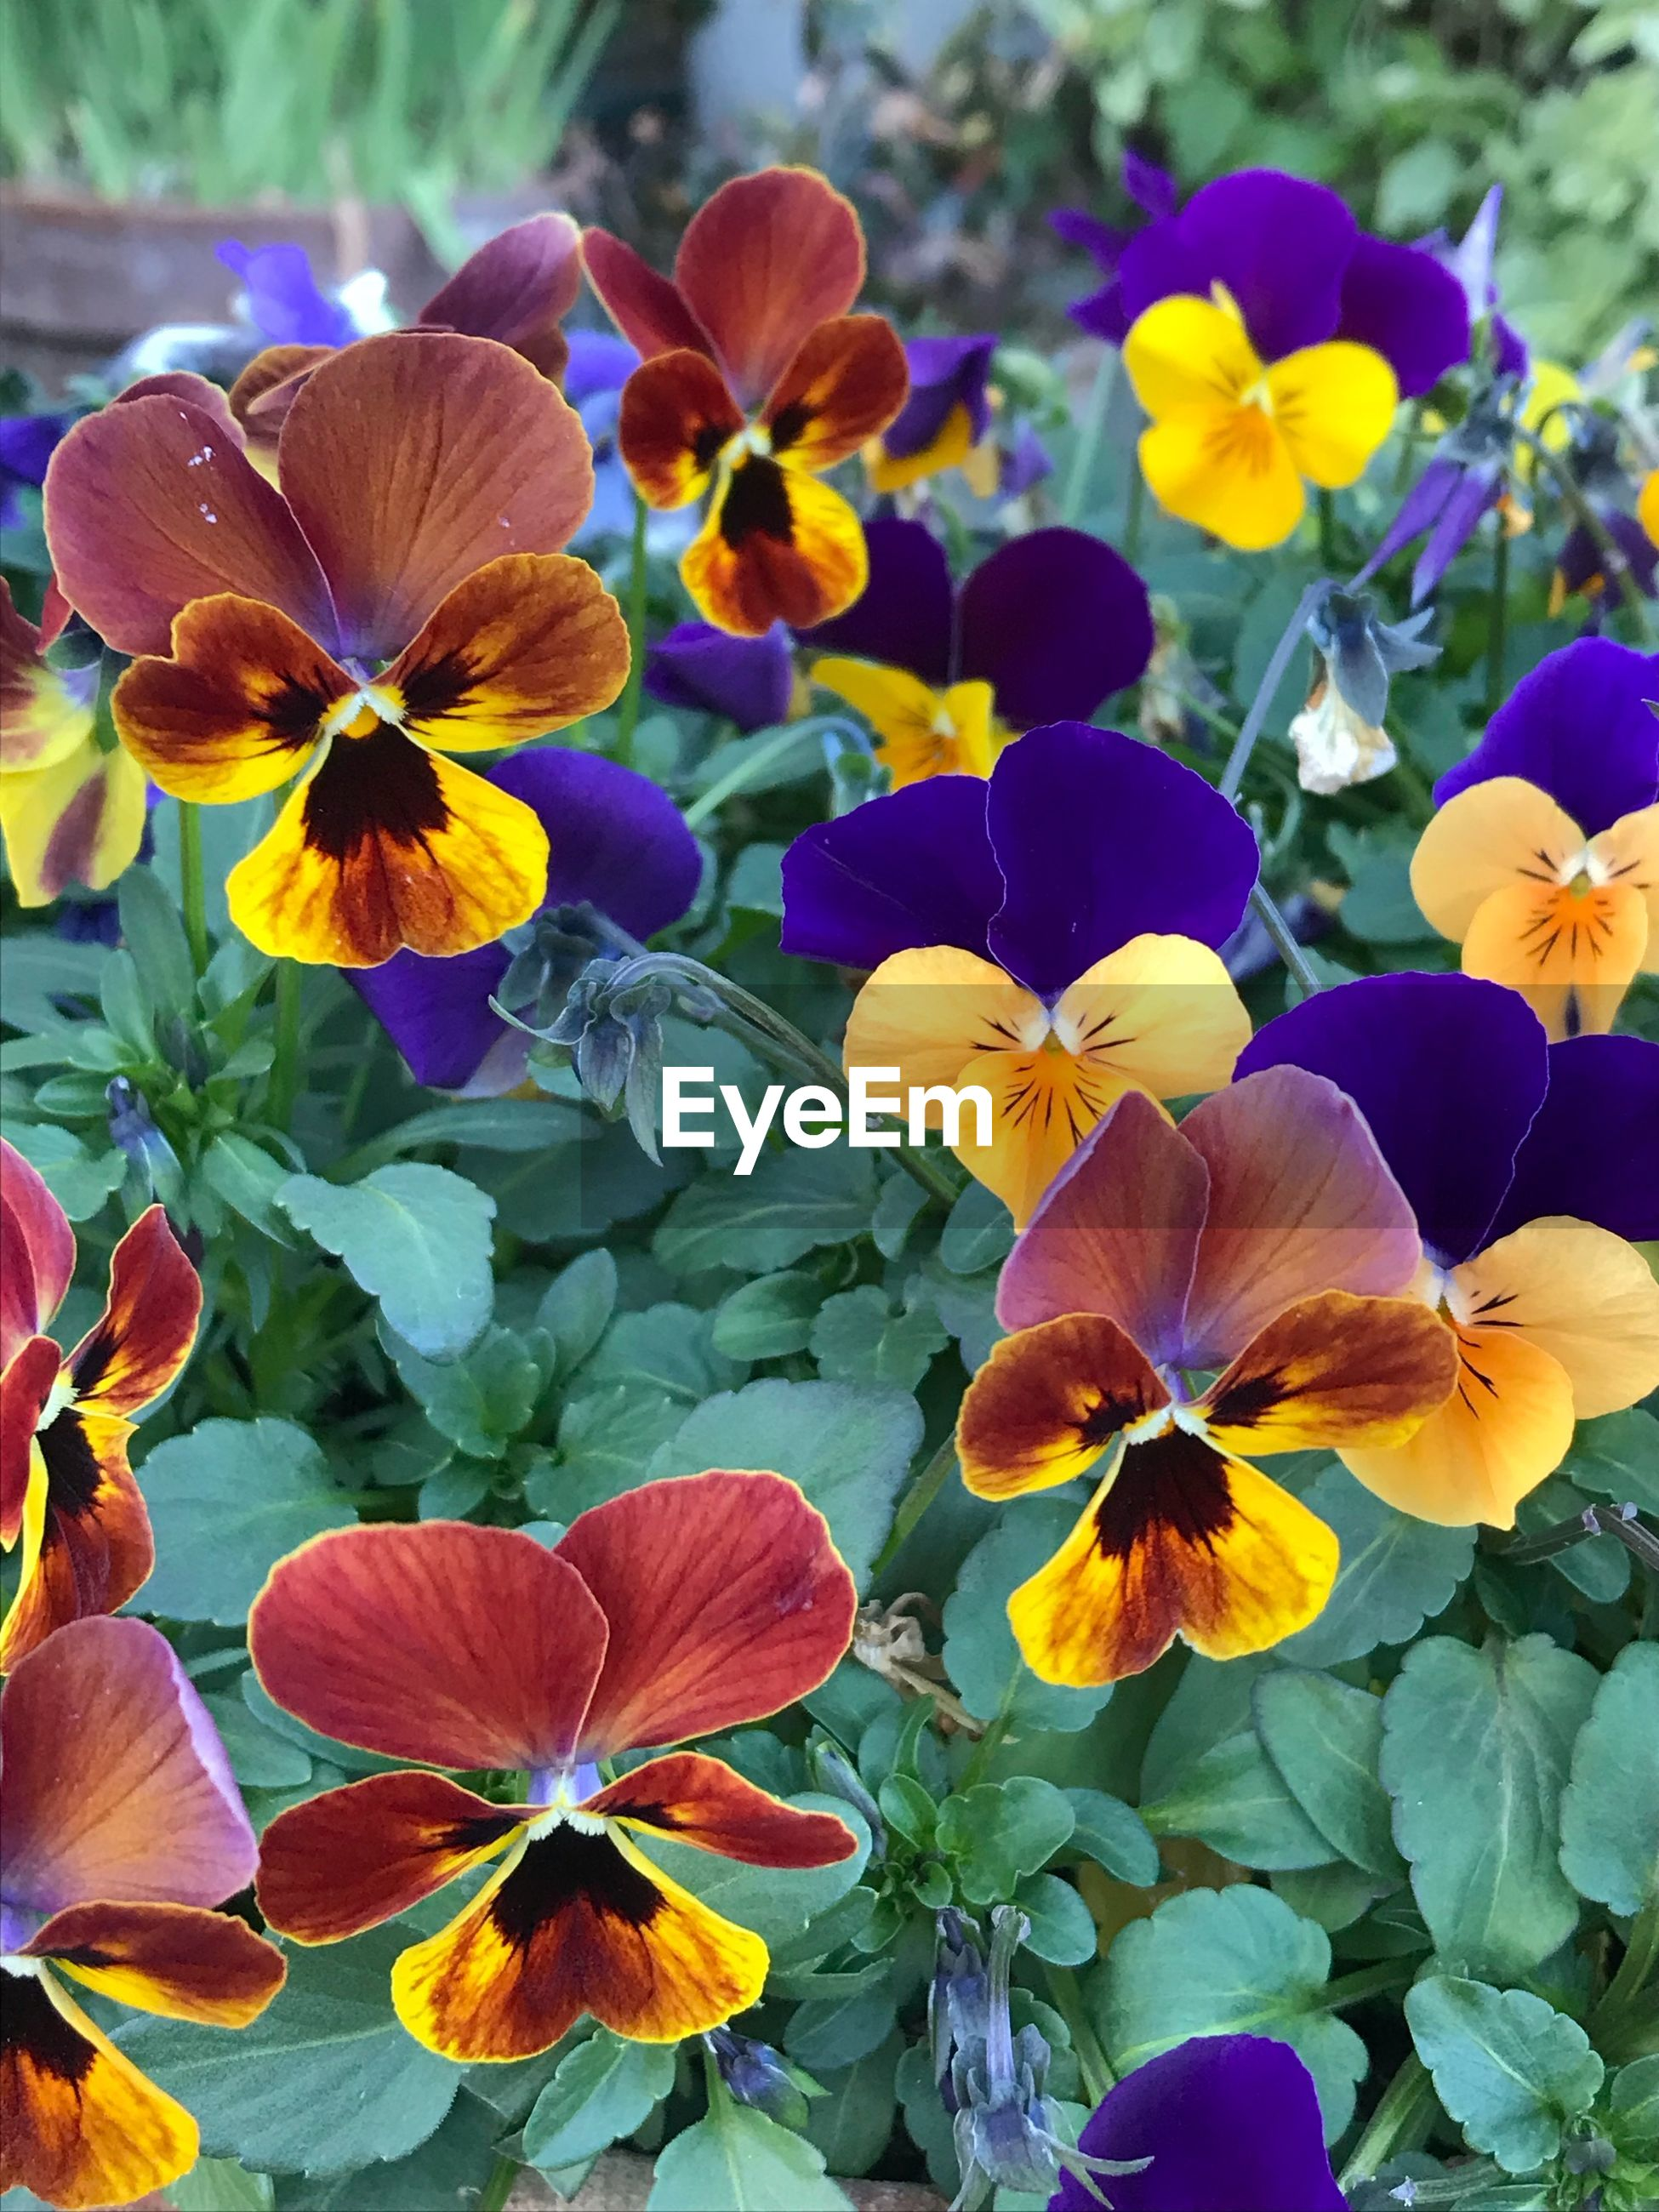 flower, petal, growth, plant, flower head, pansy, fragility, beauty in nature, nature, blooming, freshness, day, outdoors, no people, yellow, close-up, petunia